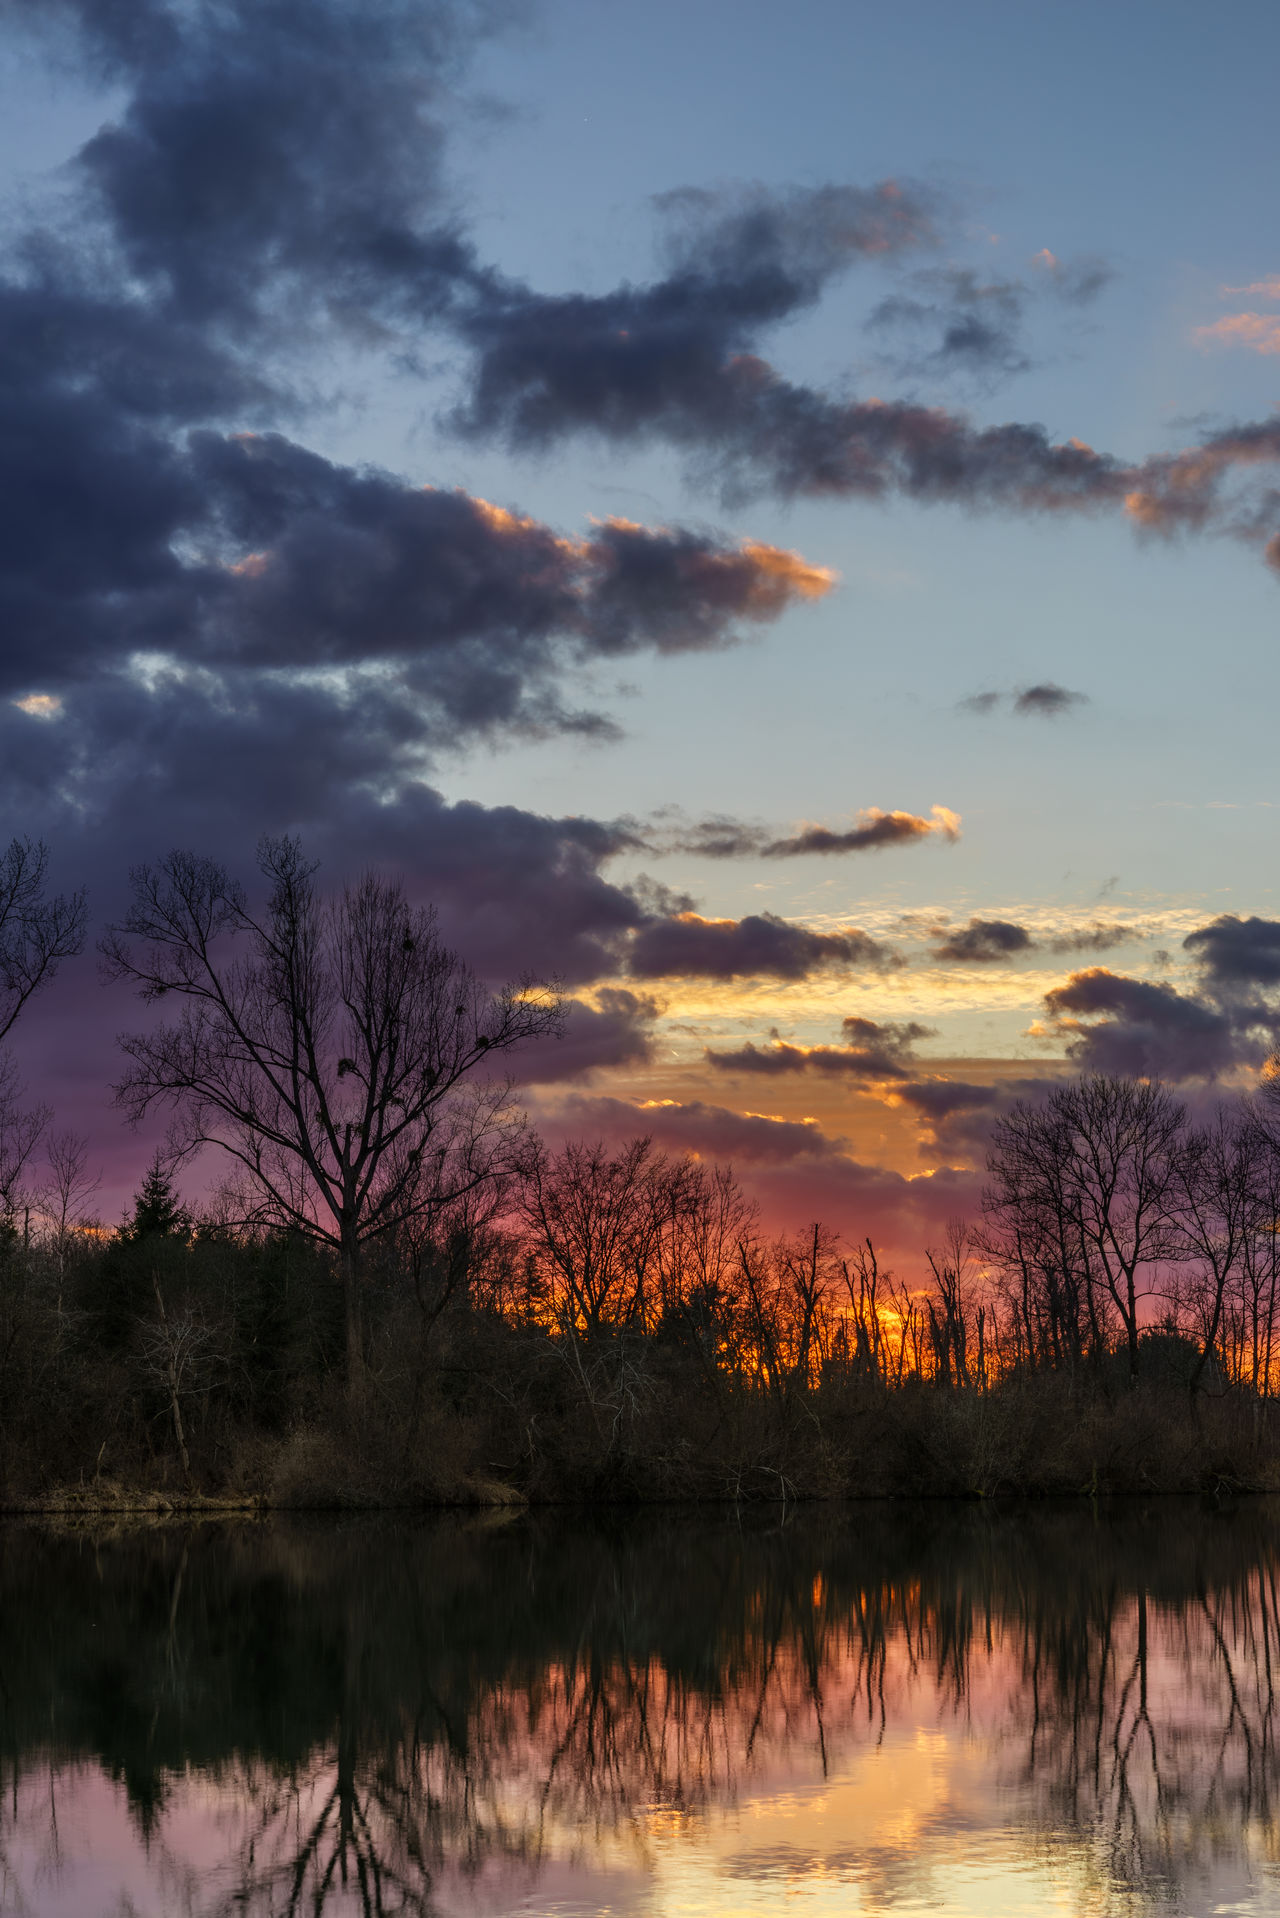 I was walking around a lake near my hometown, then this color explosion did happen Colorful Happingen Landscape Nature Rosenheim Silhouette Sunset Trees